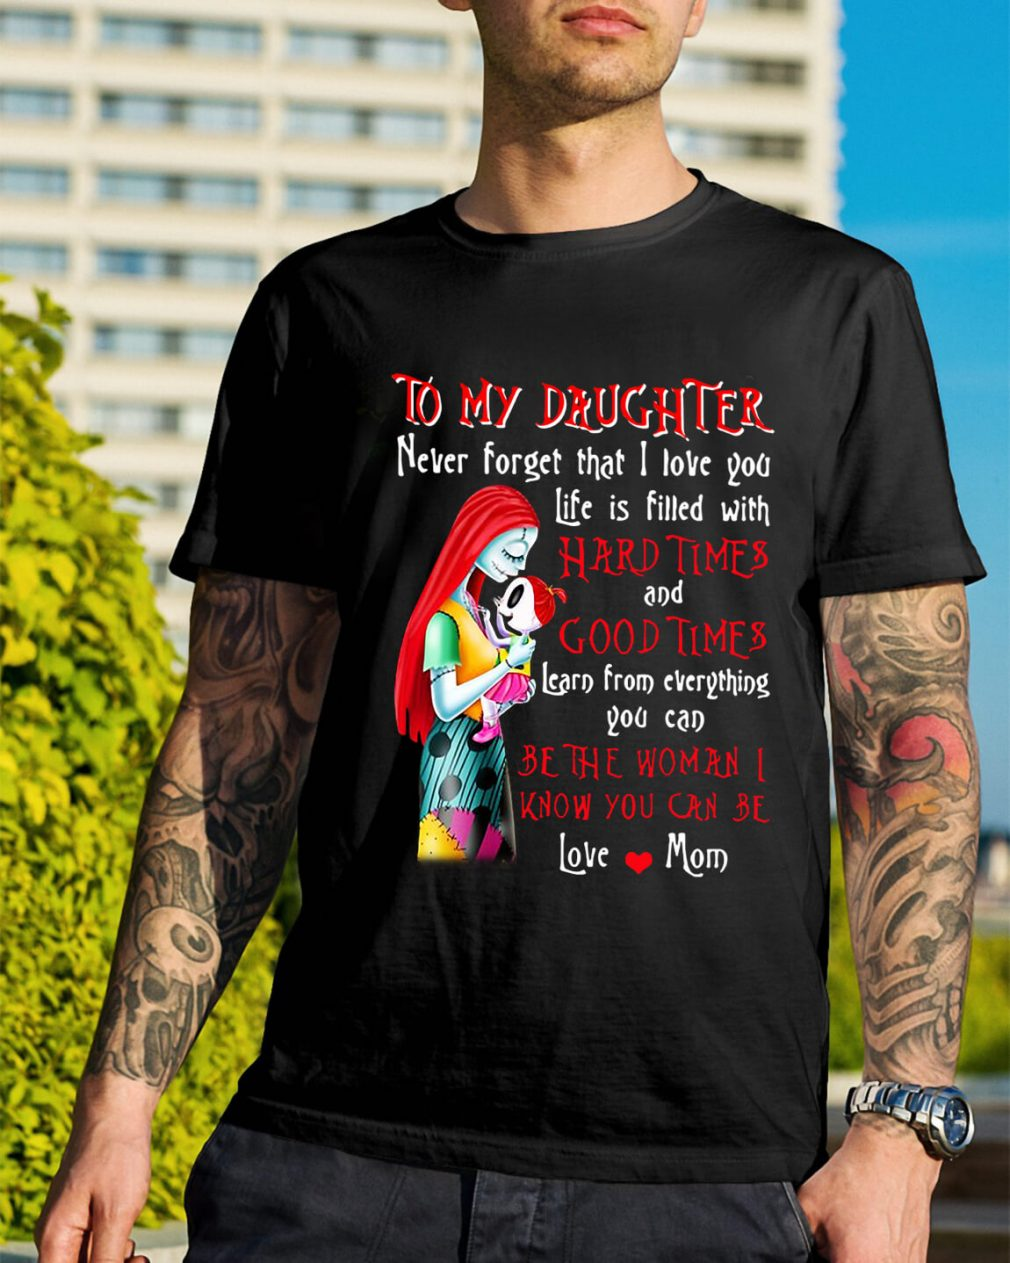 The Nightmare to my daughter never forget that I love you life is filled shirt